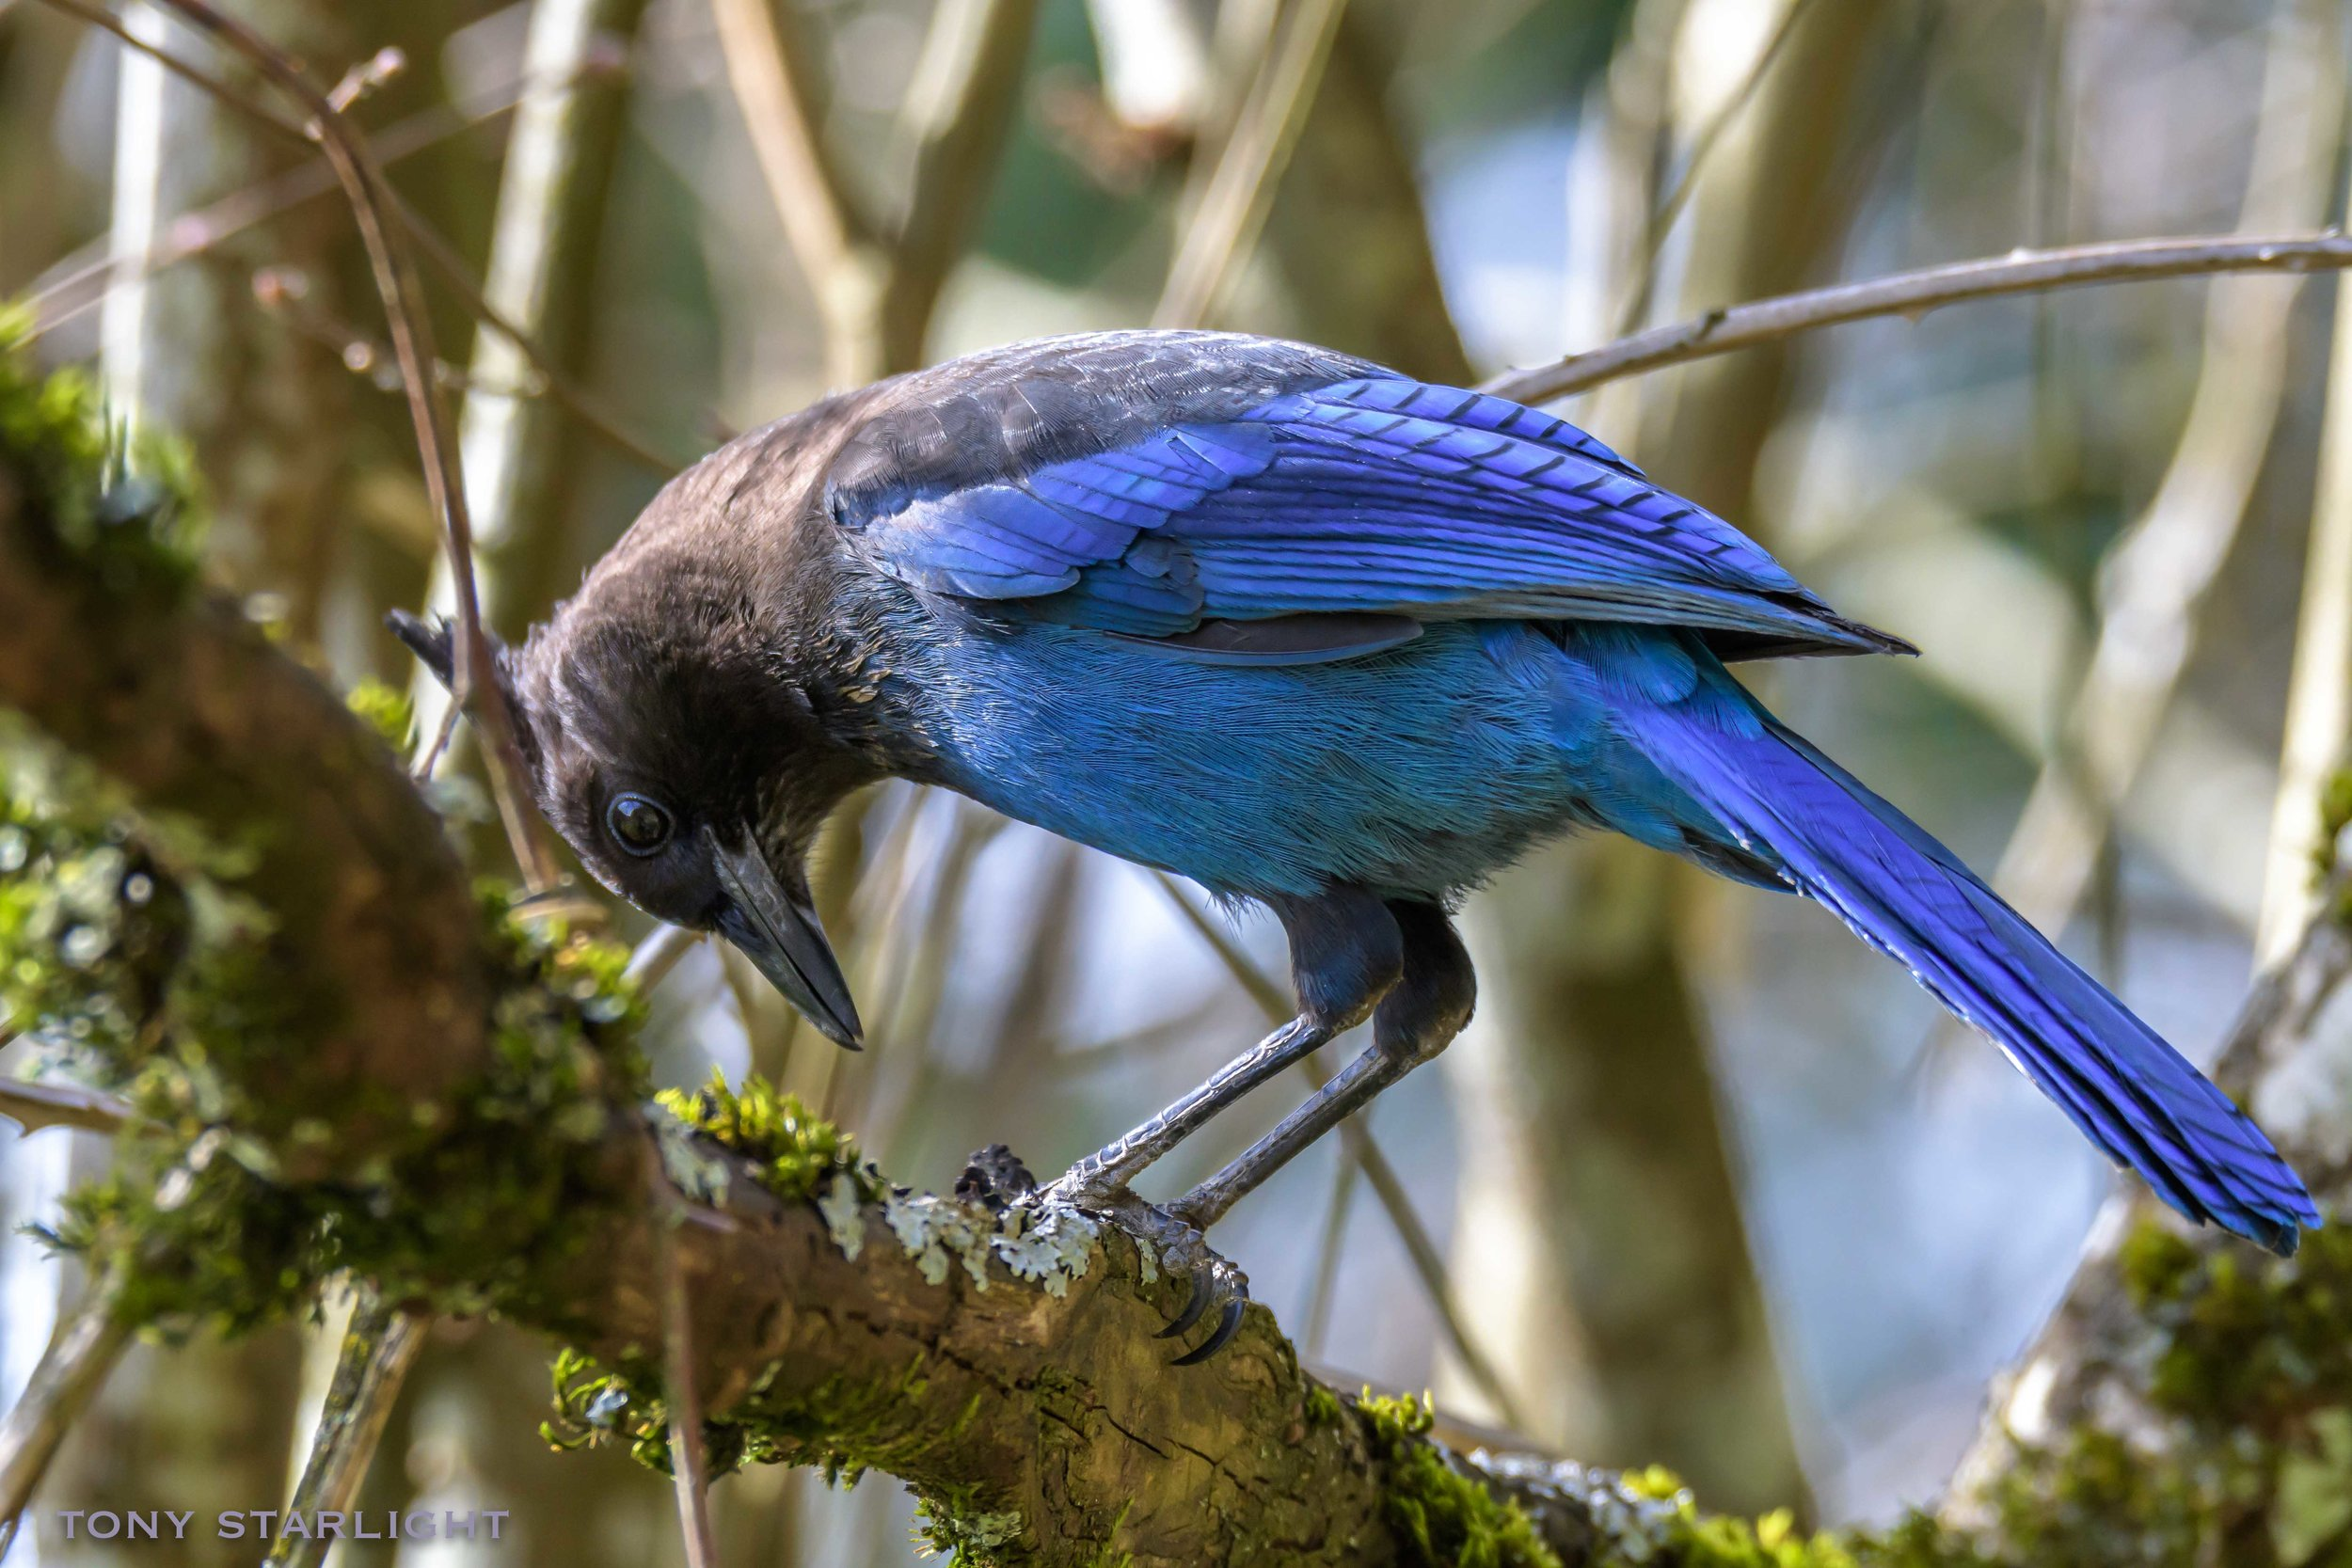 Steller's Jay - Before I had my bird awakening two years ago, I likely would have identified this as a blue crow.